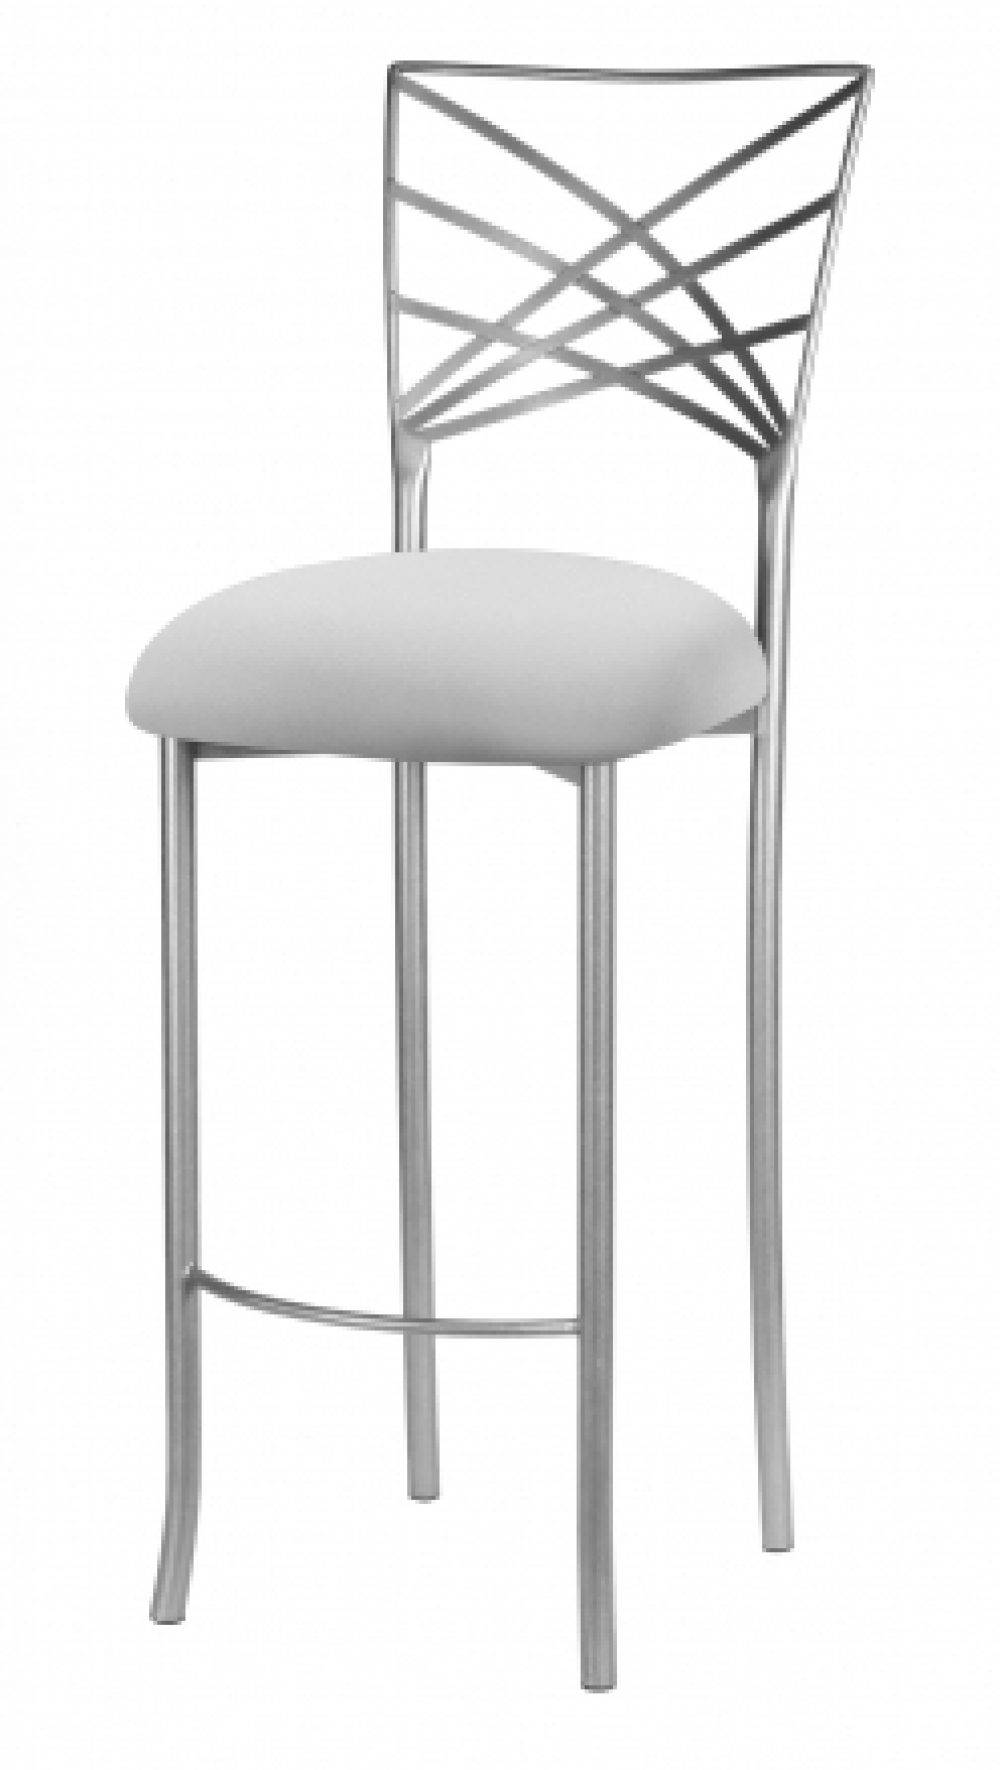 Fabulous Chameleon Bar Stool Silver Fanfare Bethings Gmtry Best Dining Table And Chair Ideas Images Gmtryco